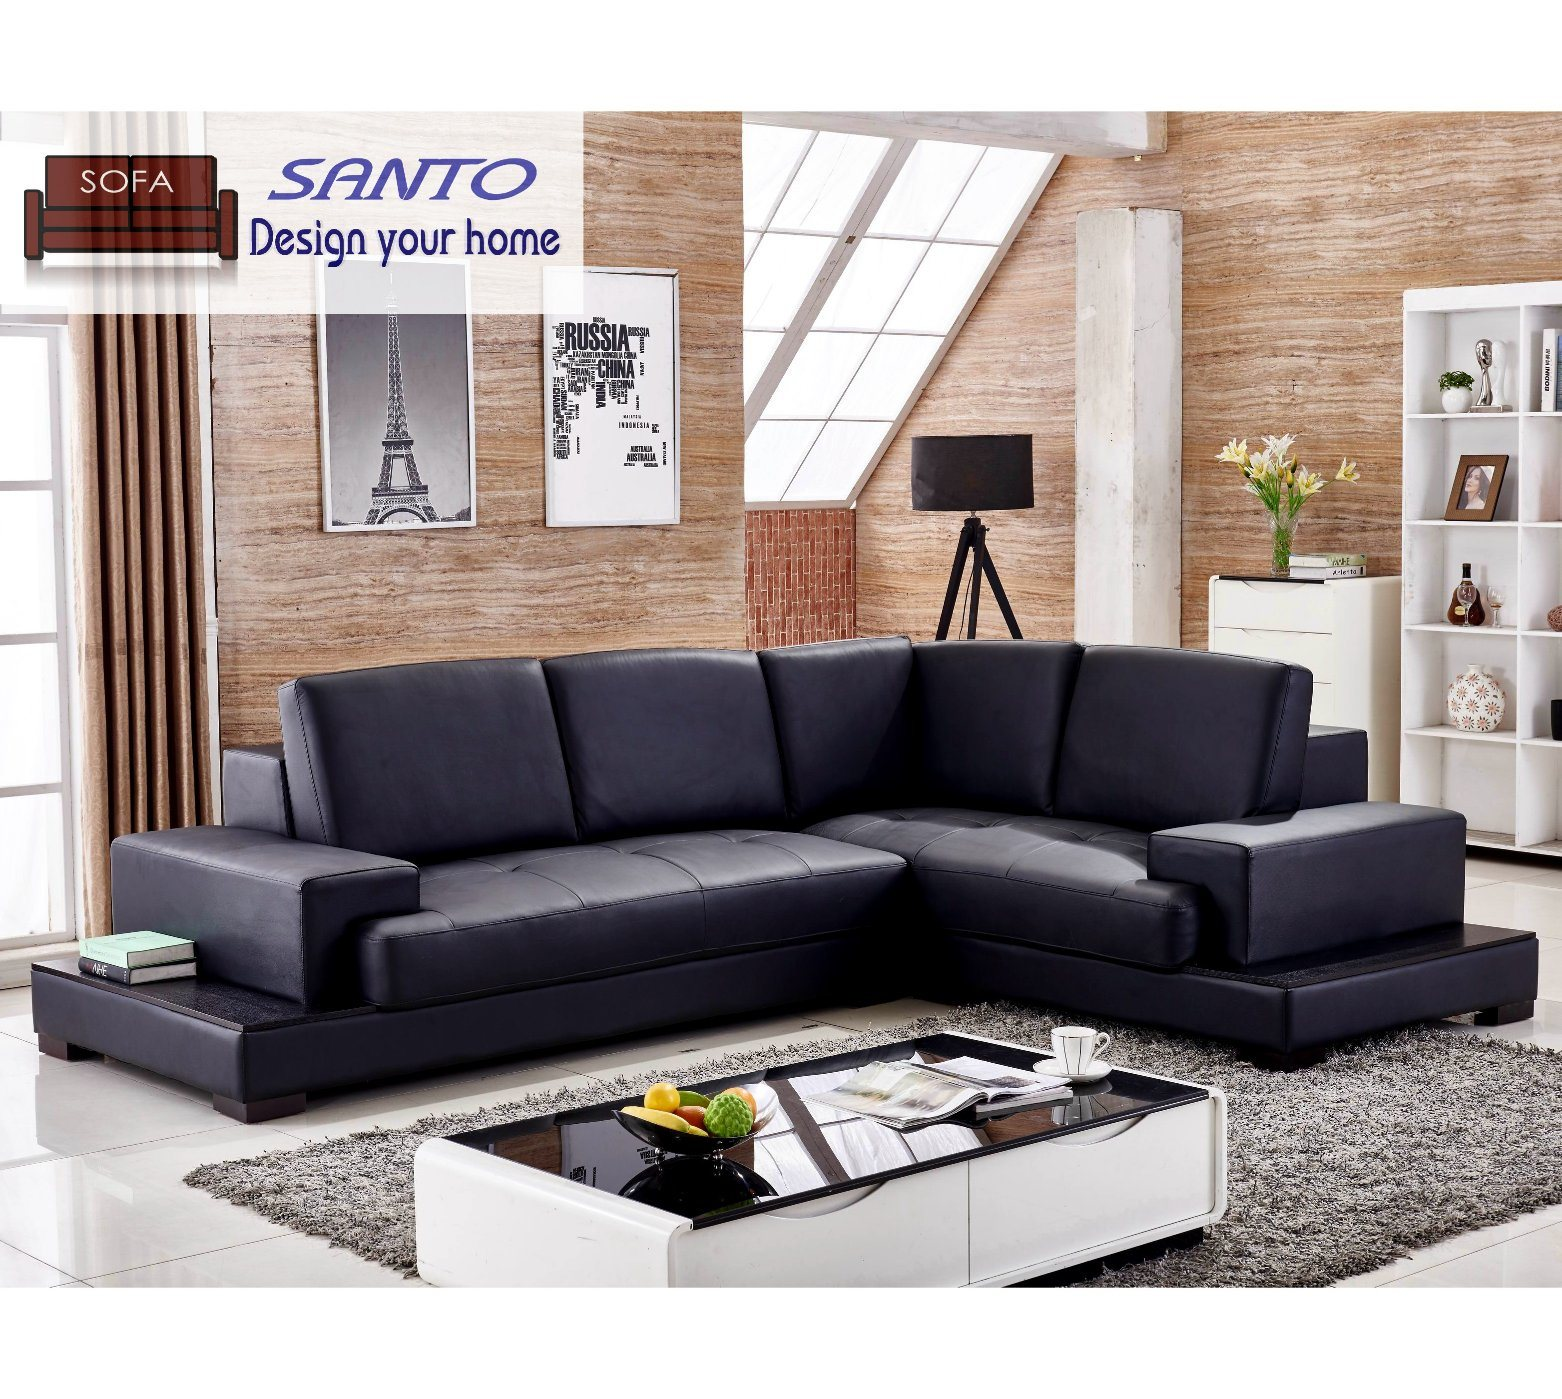 Wondrous China The Leather Factory Sofa Photos Pictures Made In Camellatalisay Diy Chair Ideas Camellatalisaycom